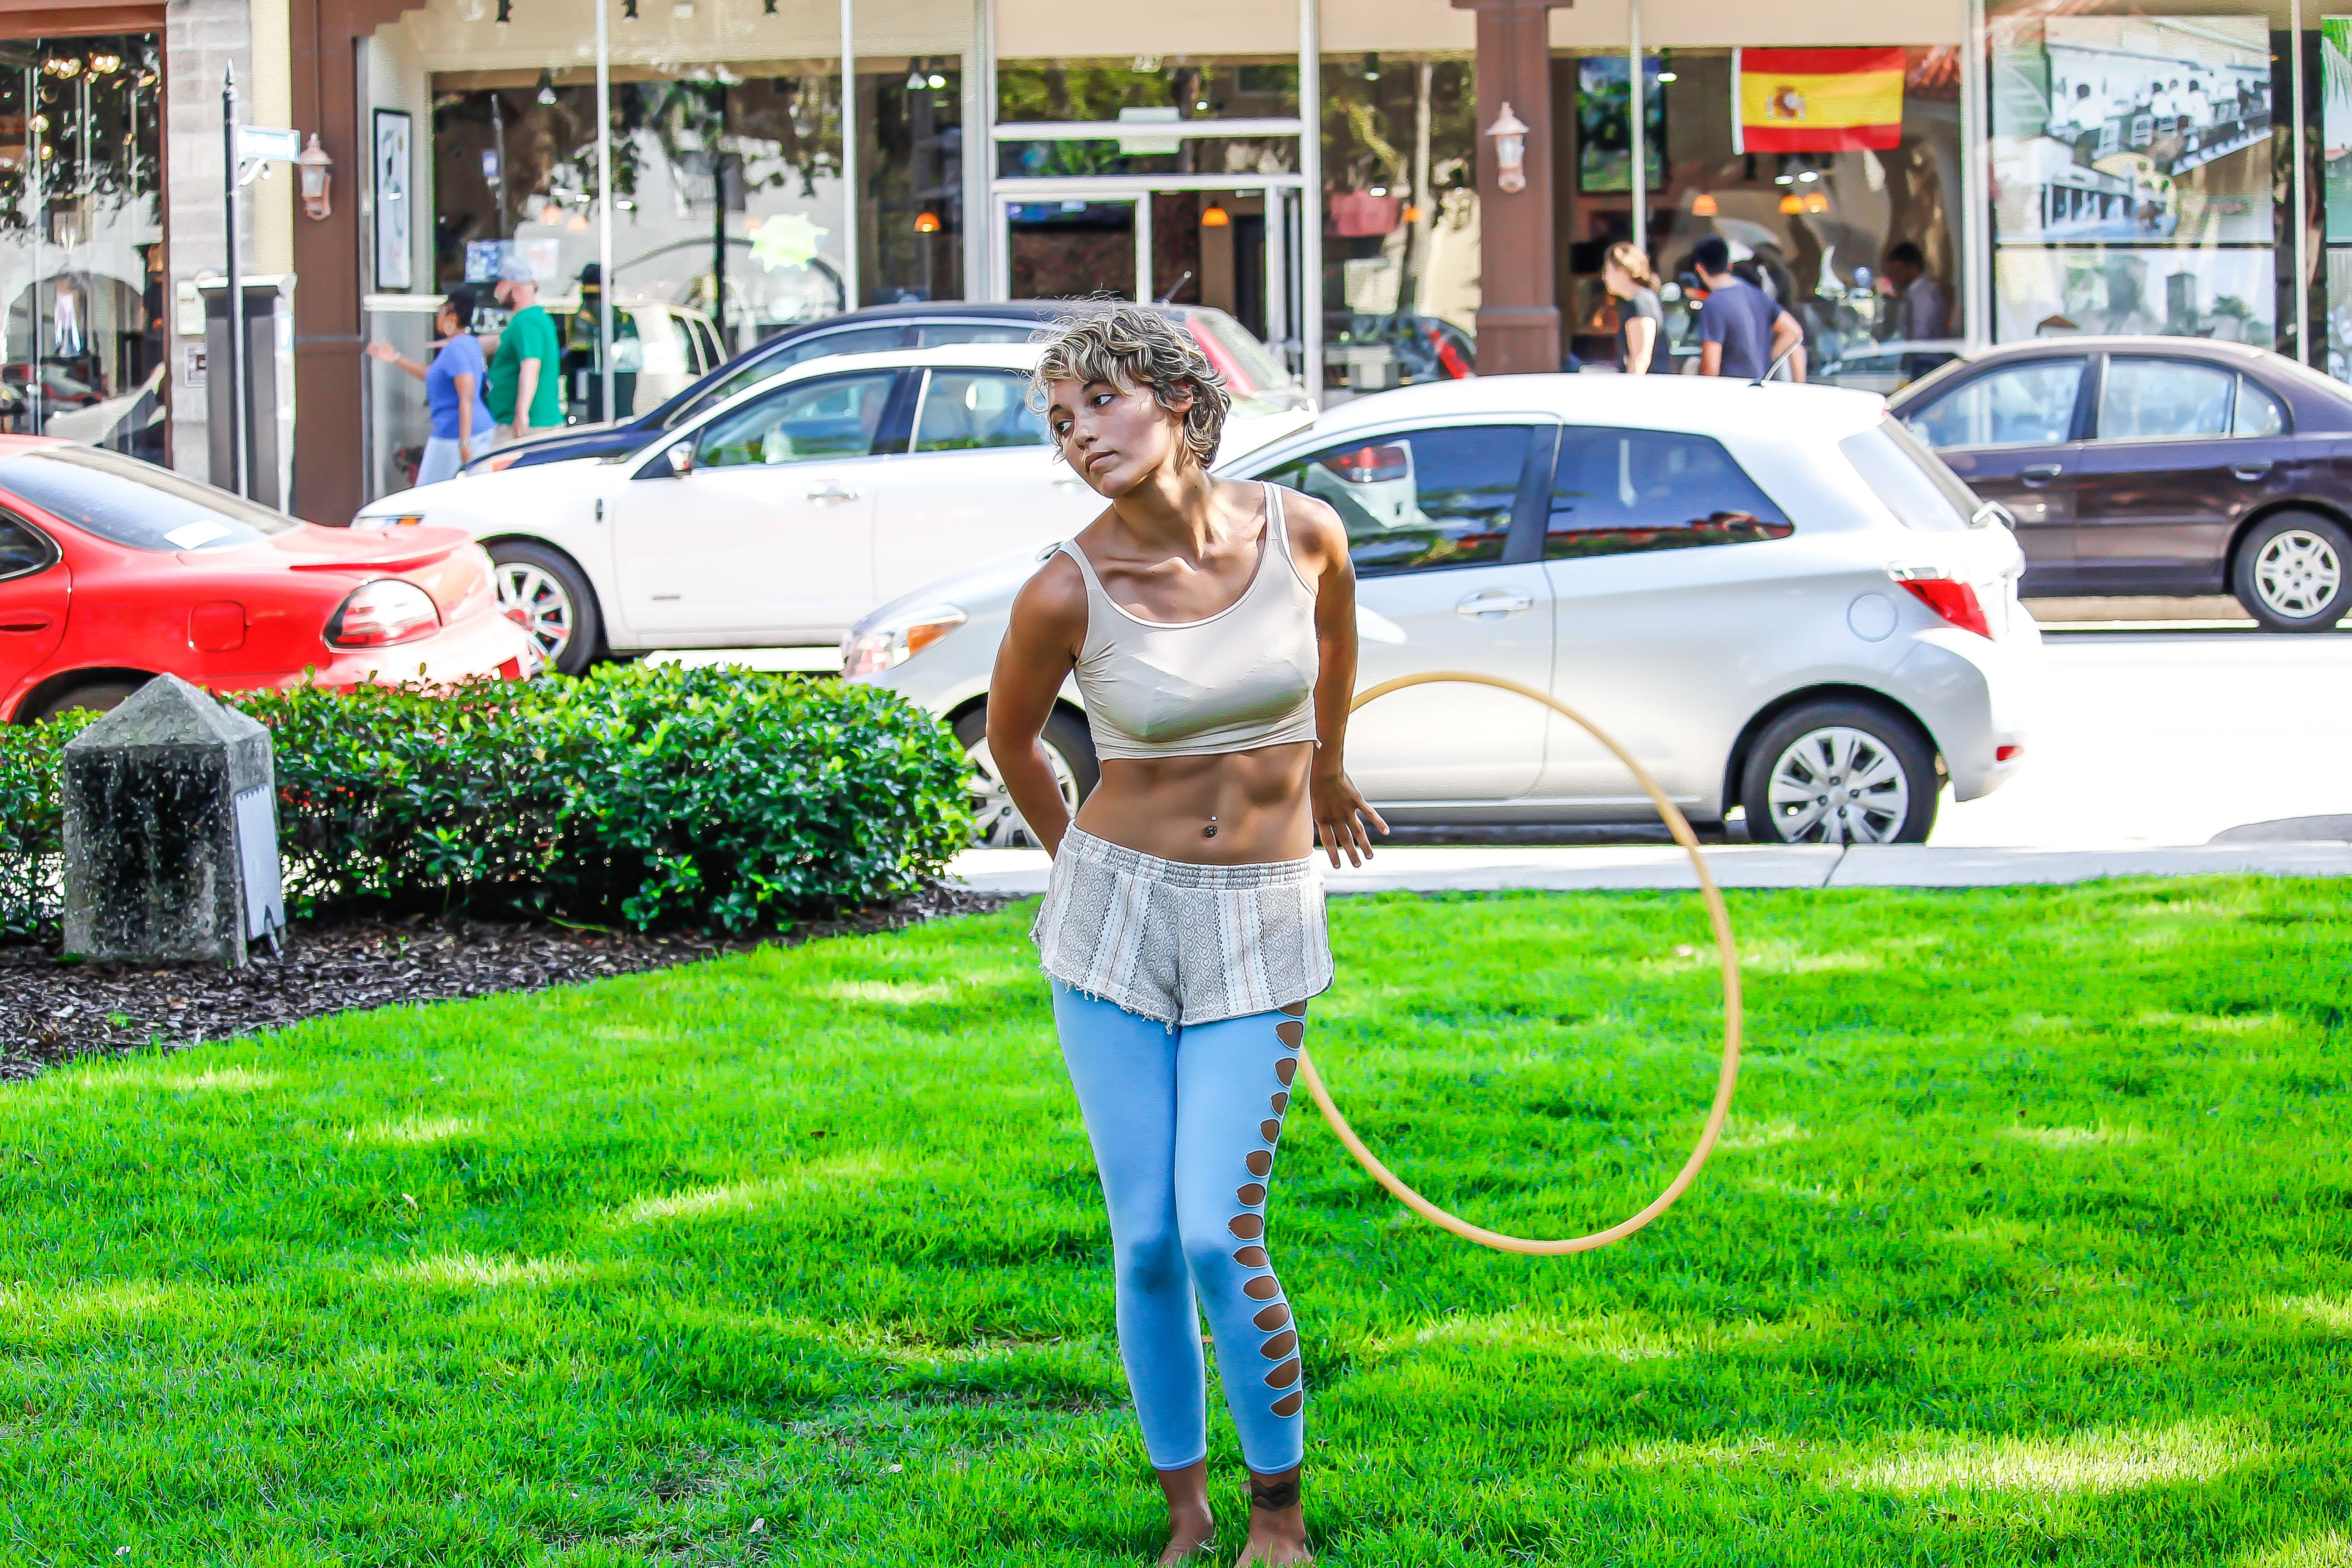 Woman in White Sleeveless Shirt and Blue Pants Holds Yellow Hula Hoop Stands on Green Grass